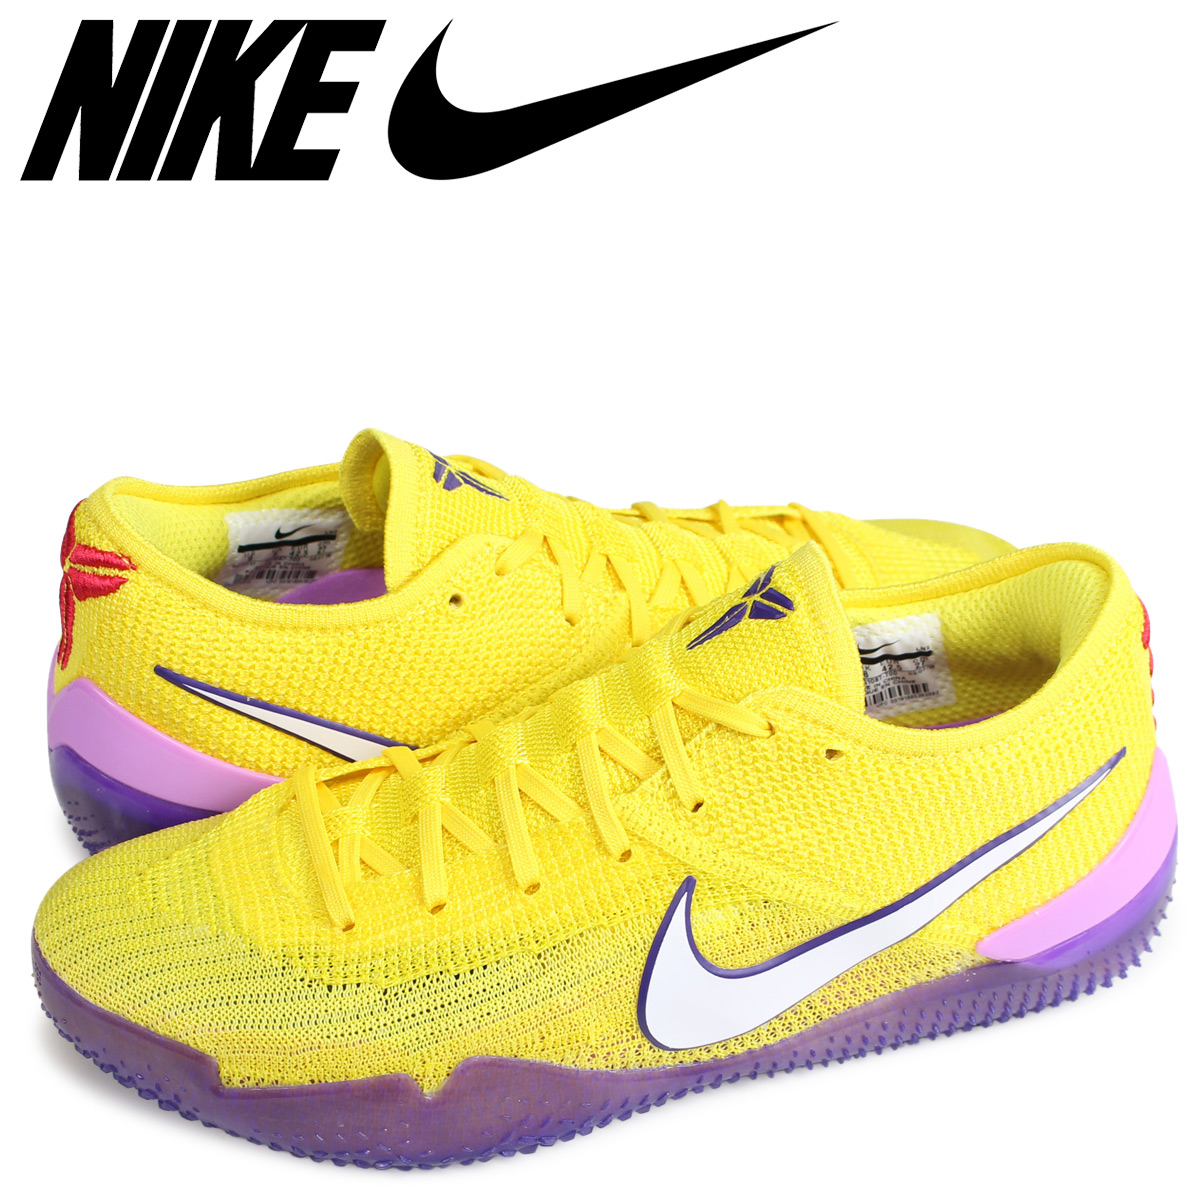 9178ce3cd442 NIKE KOBE AD NXT 360 YELLOW STRIKE Nike Corby sneakers men AQ1087-700  yellow  187